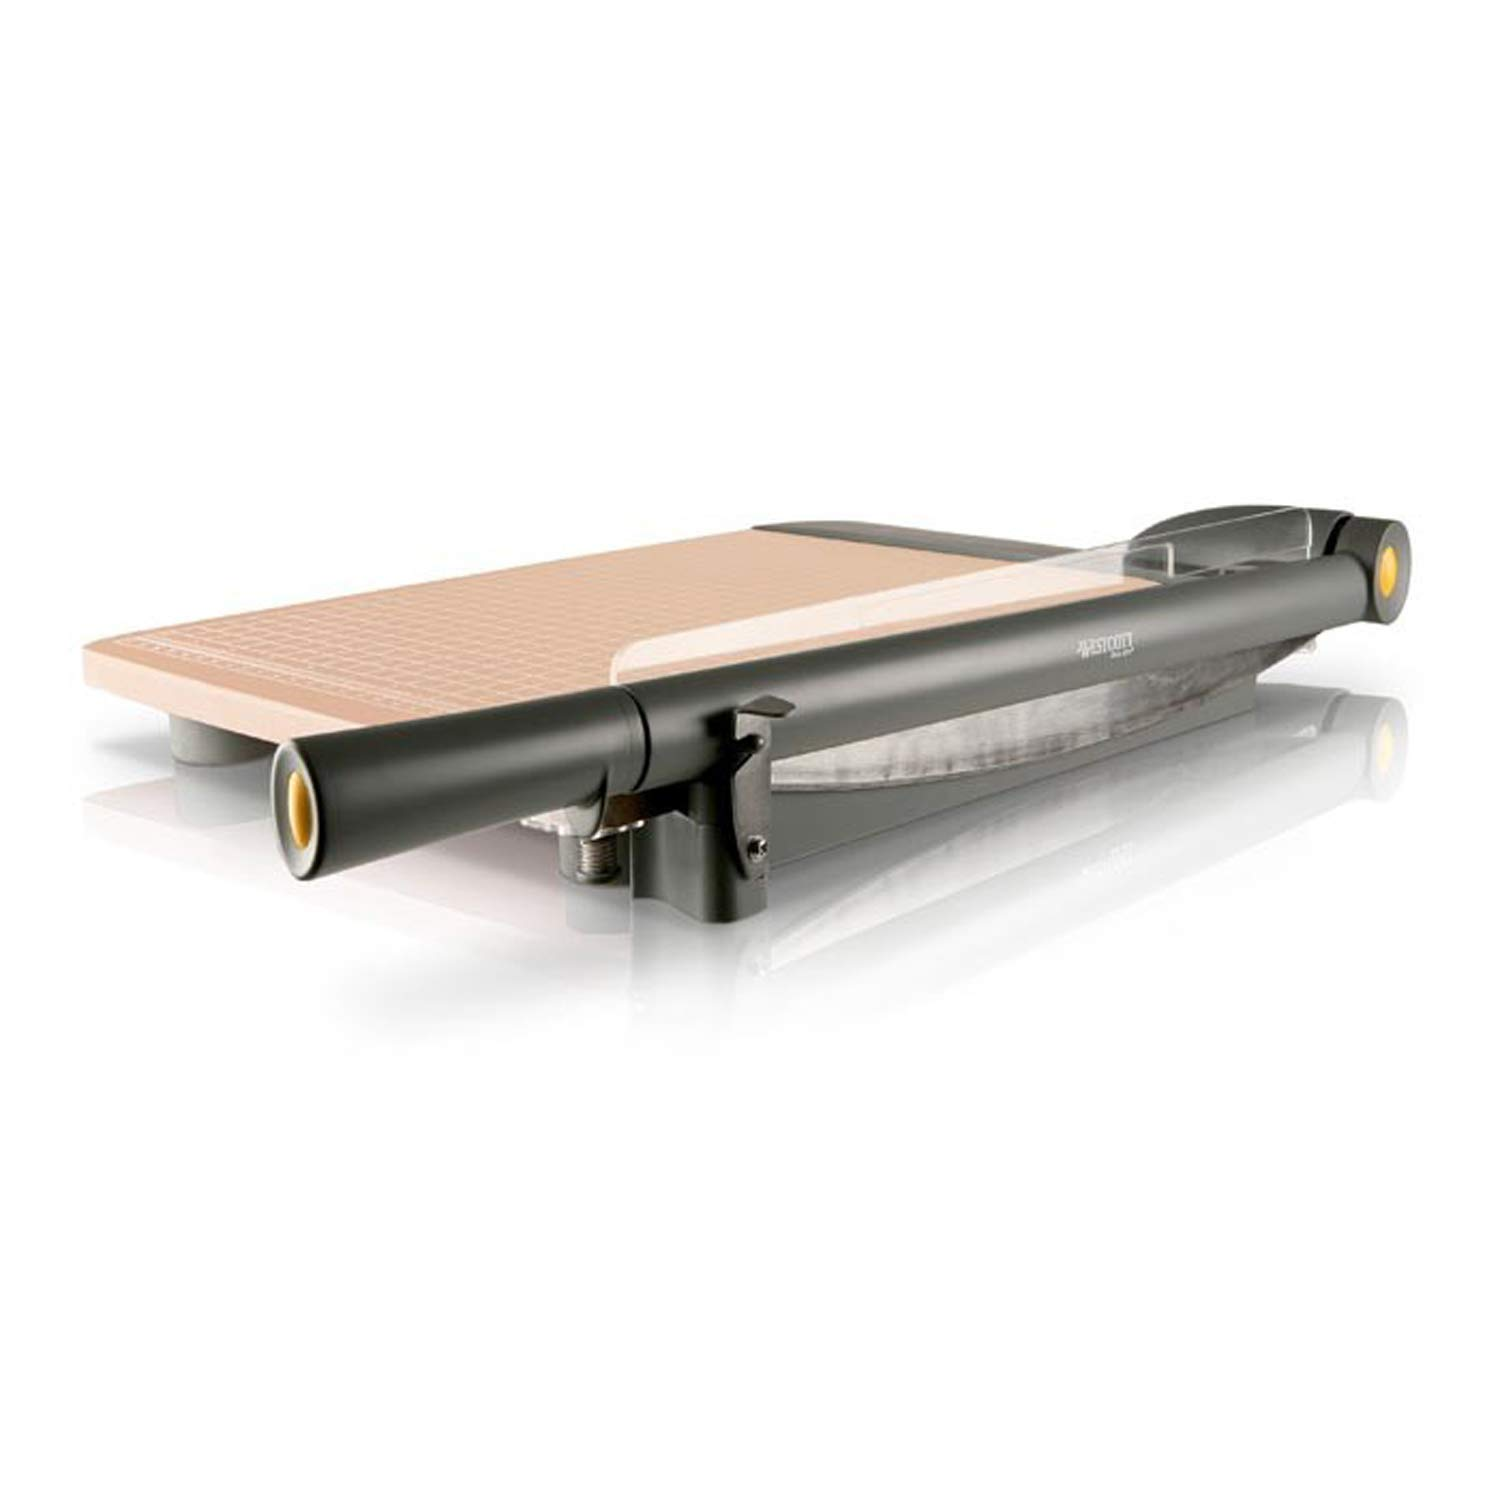 Westcott ACM15107 TrimAir Titanium Wood Guillotine Paper Trimmer with Anti-Microbial Protection 15 Renewed